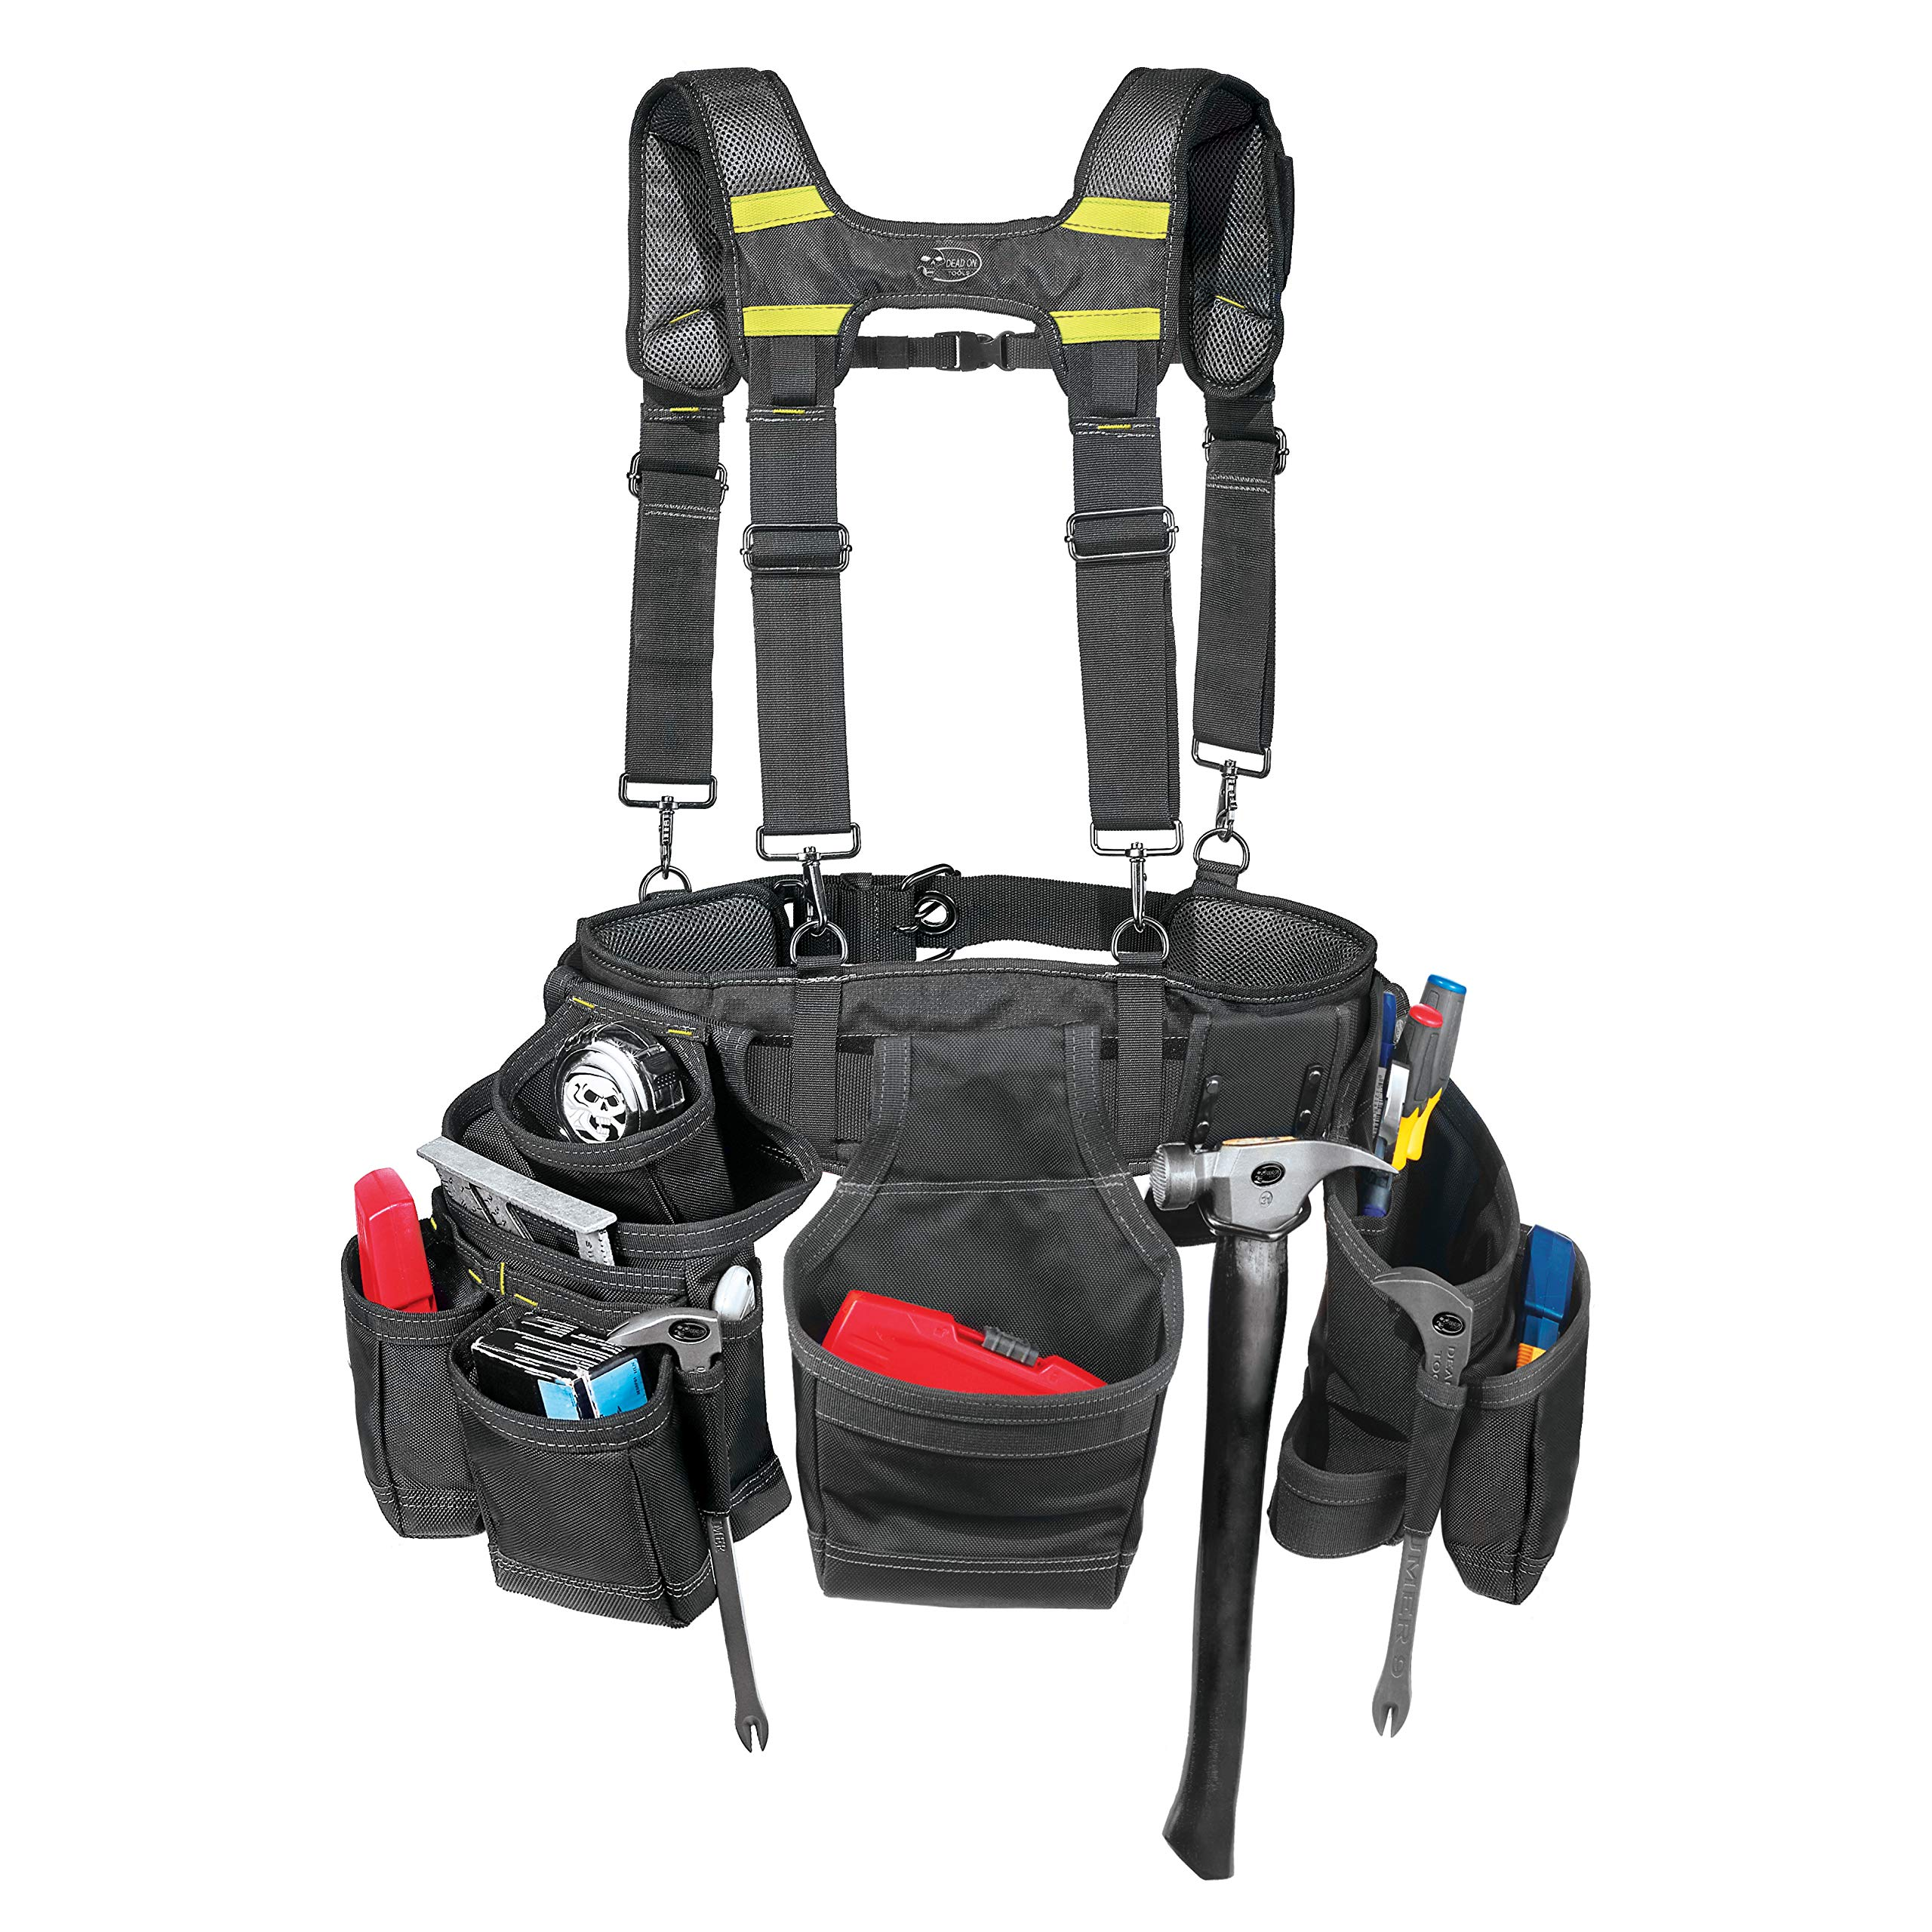 Dead On Tools HDP369857 Pro Framers Suspension Rig by Dead On Tools